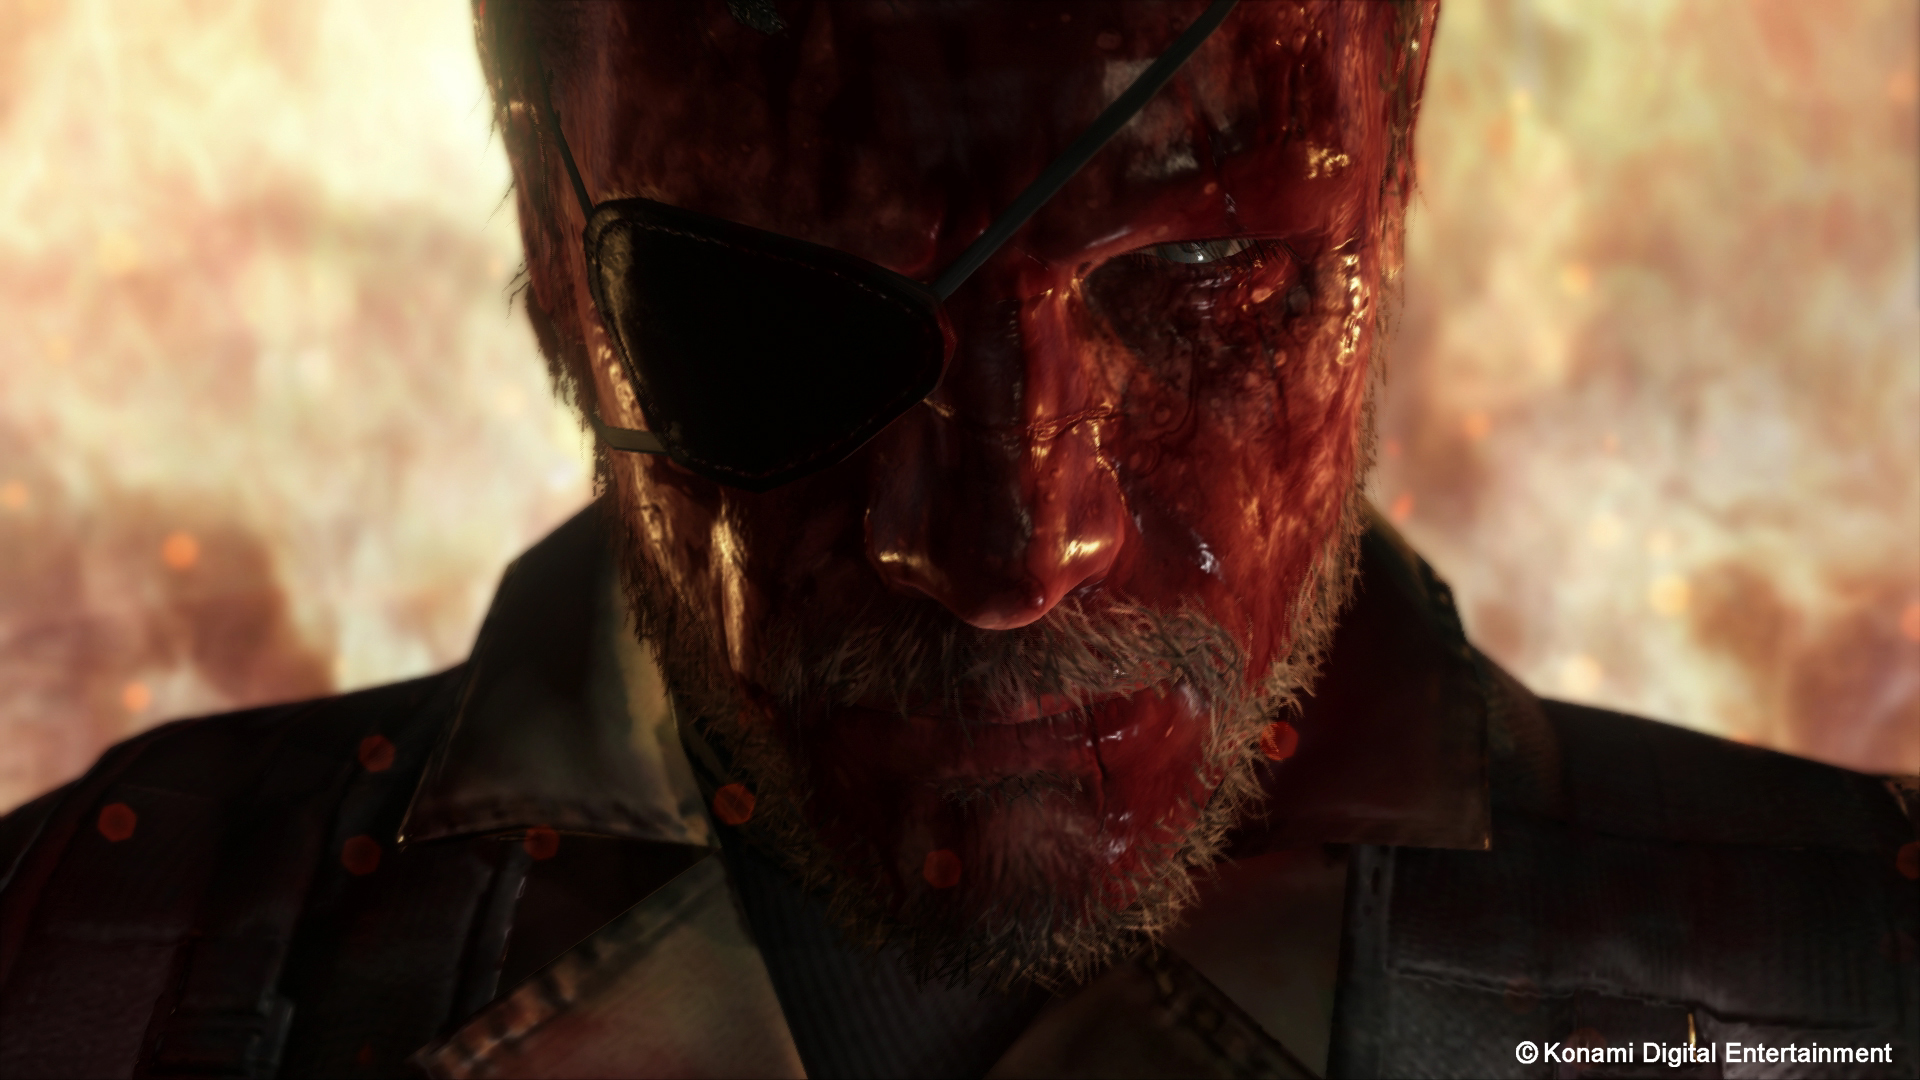 We Count Down to the Top Five Most Memorable MGS Moments!